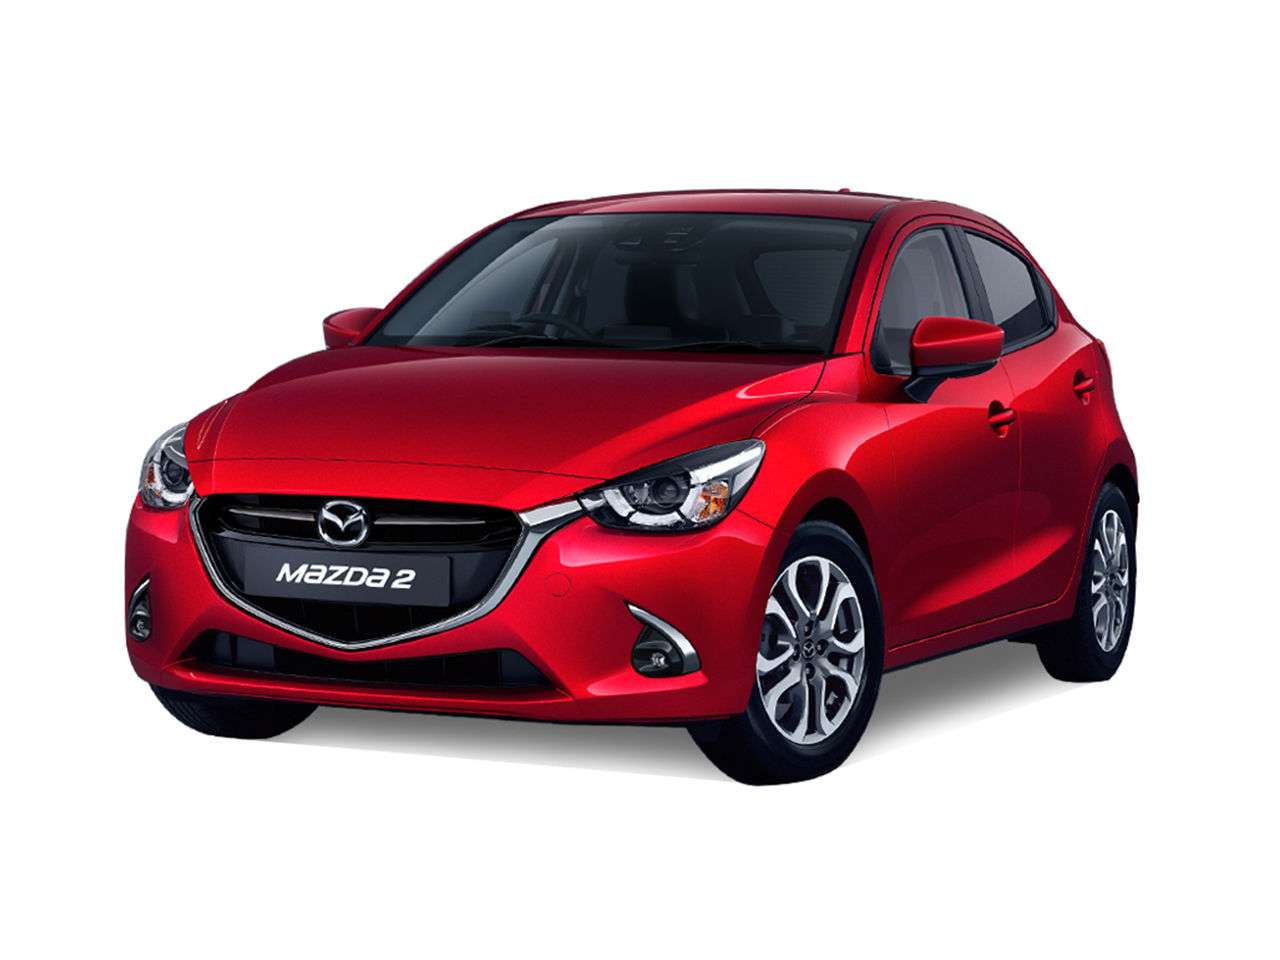 2018 mazda 2 hatchback prices in qatar gulf specs reviews for doha yallamotor. Black Bedroom Furniture Sets. Home Design Ideas